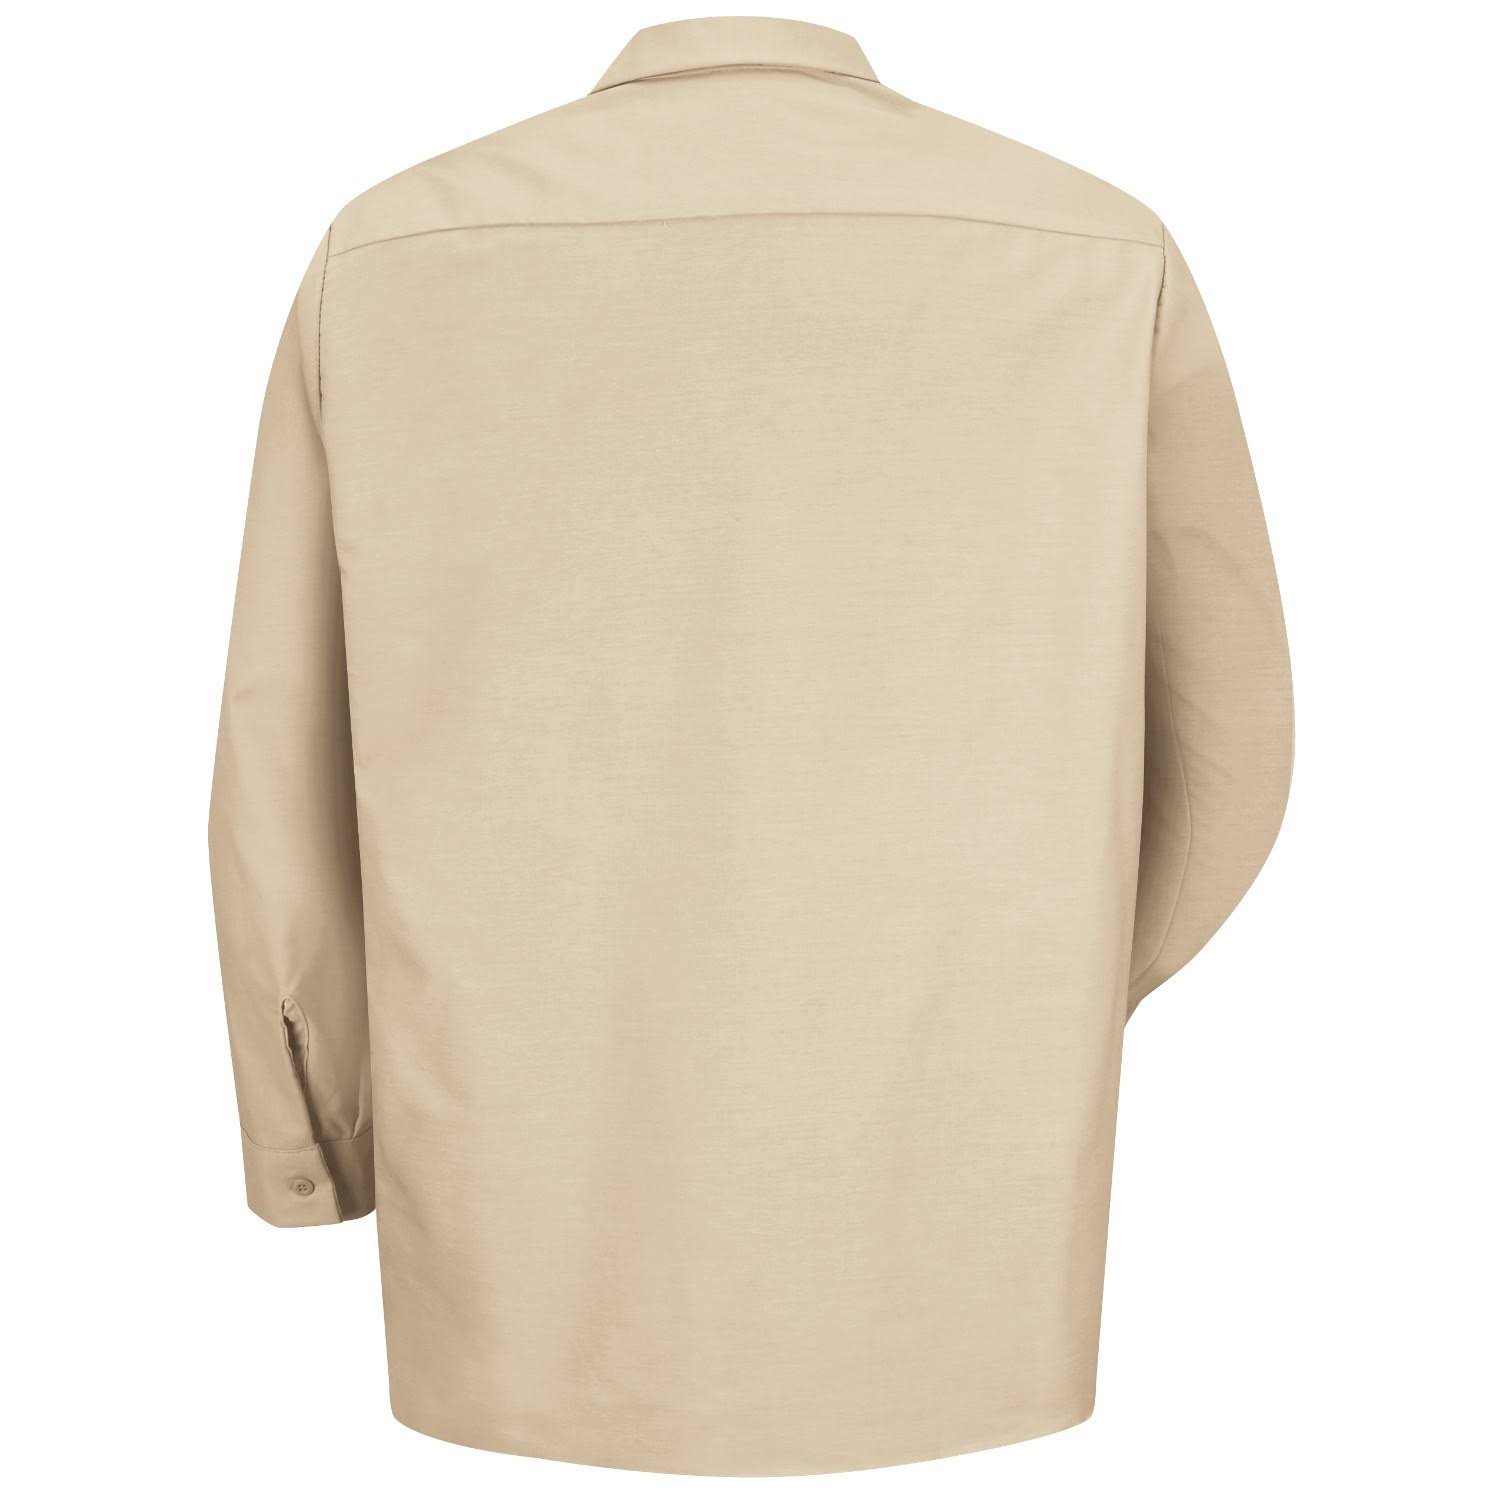 De Camisa Long Tall Tan Hombre amp; Light Medium Trabajo Para Red Industrial Big Kap dpnOrxp